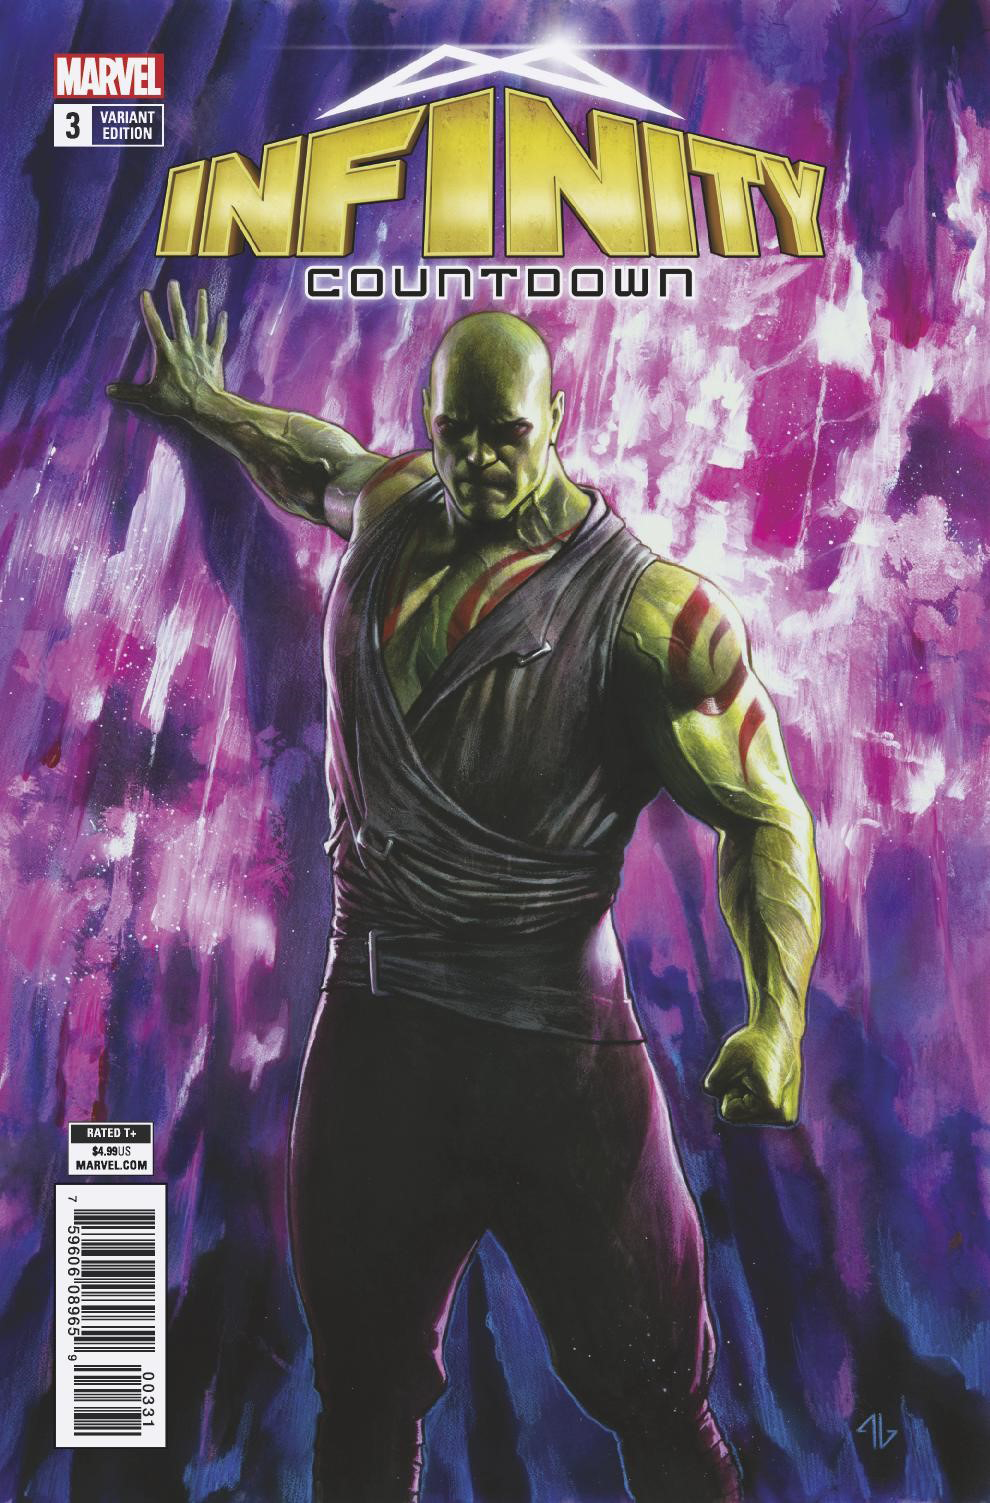 INFINITY COUNTDOWN #3 (OF 5) DRAX HOLDS INFINITY VAR LEG